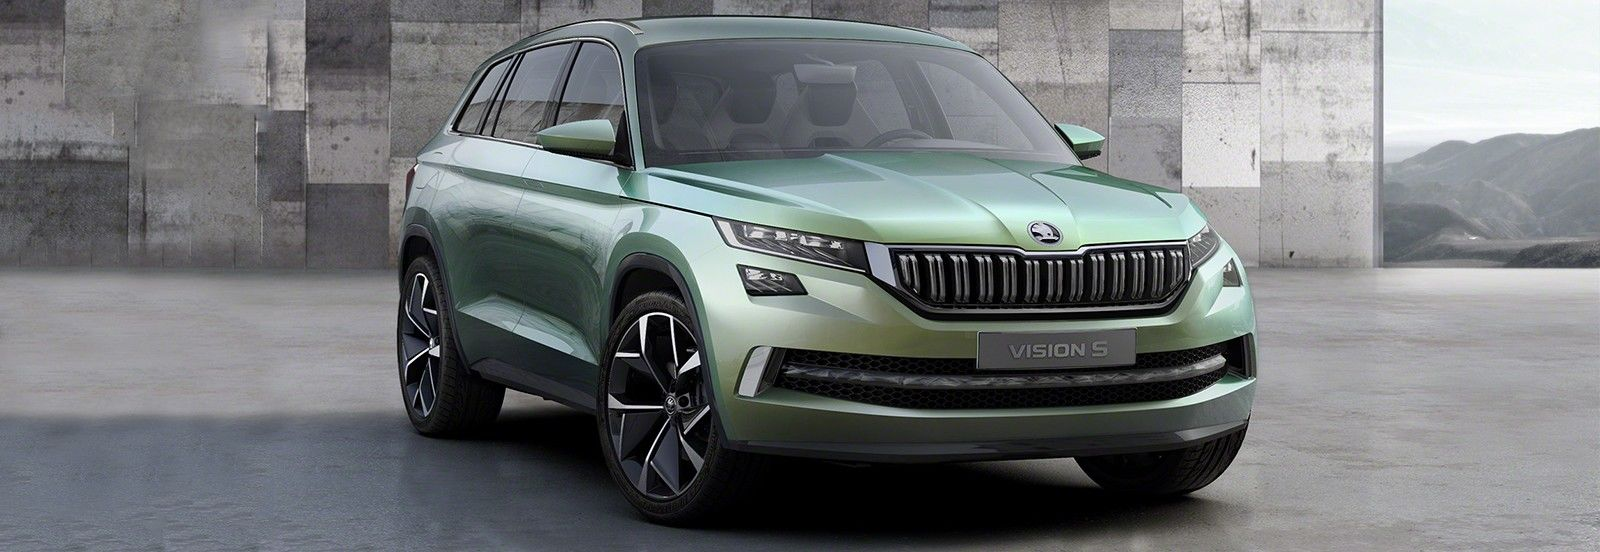 skoda kodiaq 7 seater suv price specs release date carwow. Black Bedroom Furniture Sets. Home Design Ideas